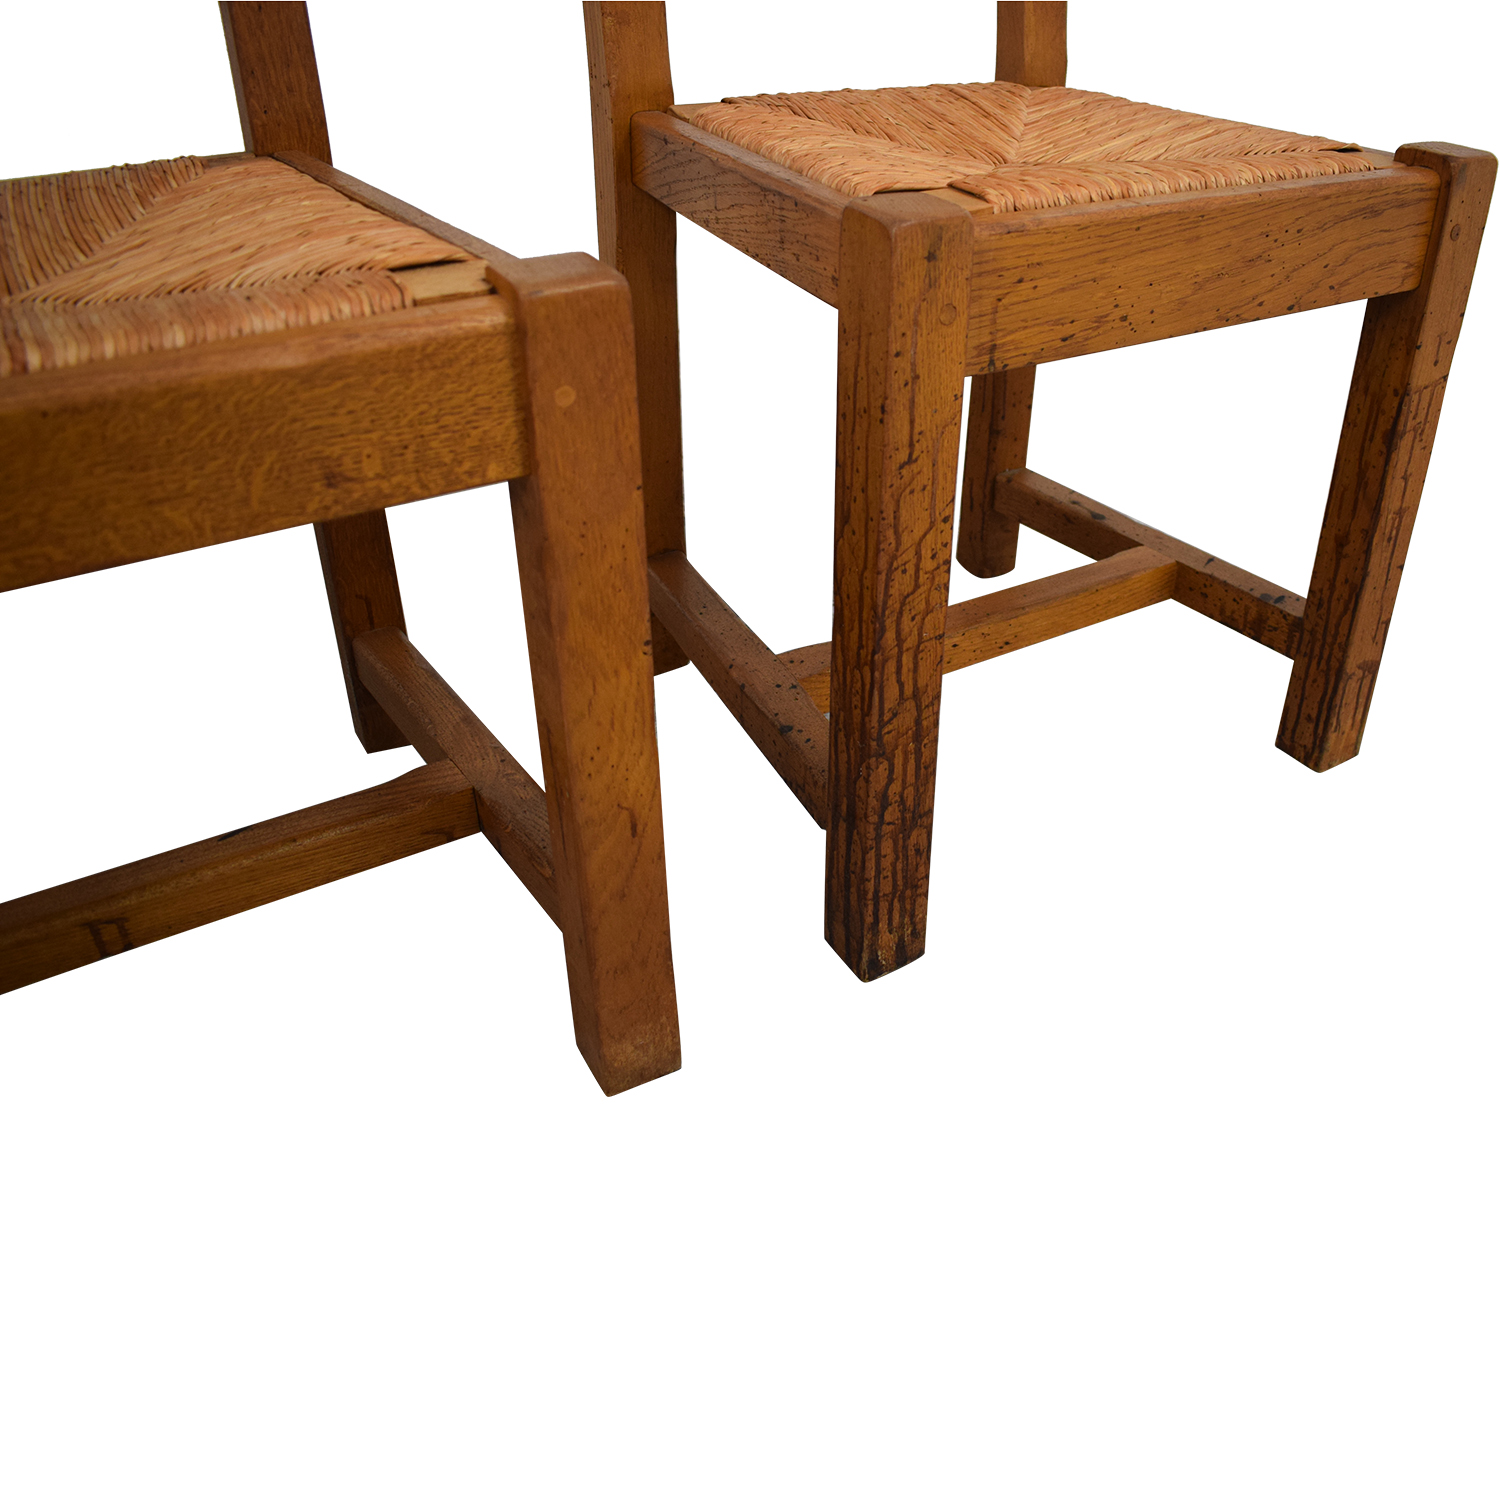 Crate & Barrel Crate & Barrel French Farm Dining Chairs